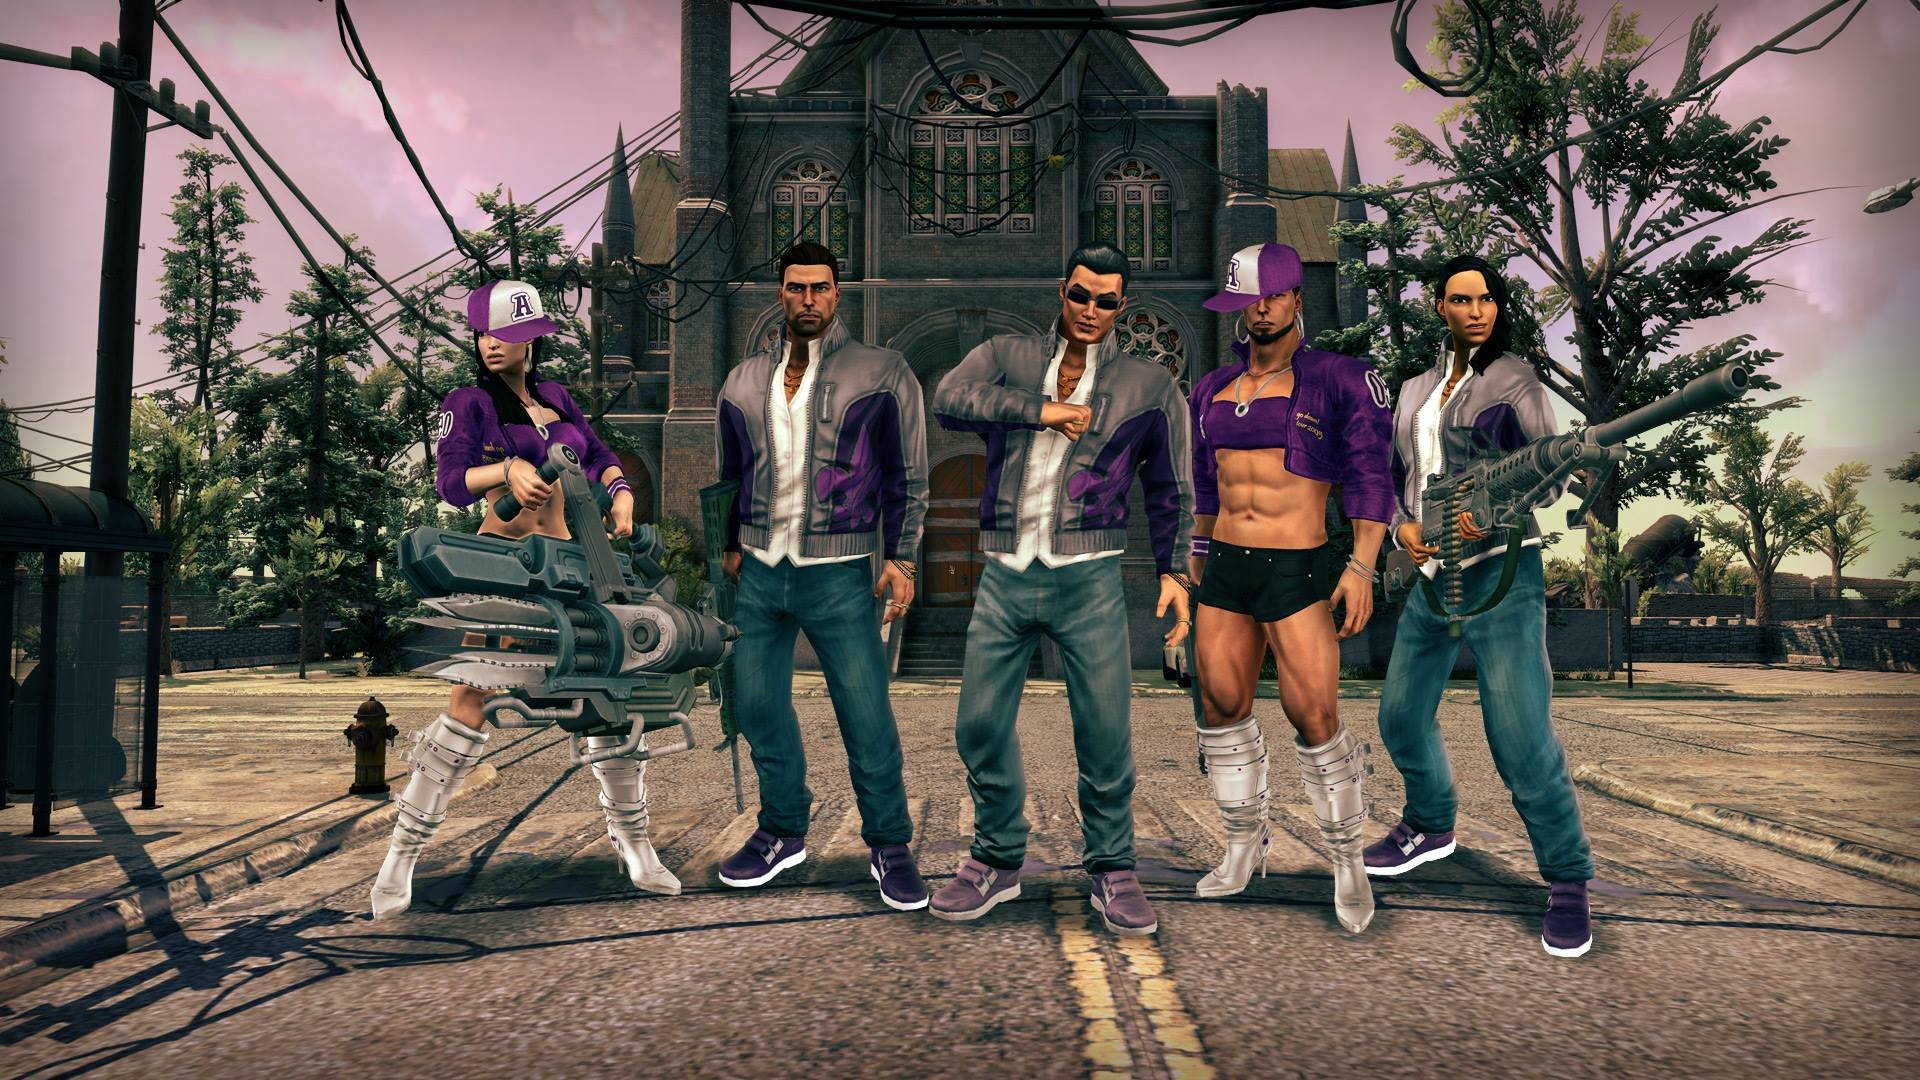 Free Download Saints Row 4 Iv Wallpaper Id238055 Hd 1080p